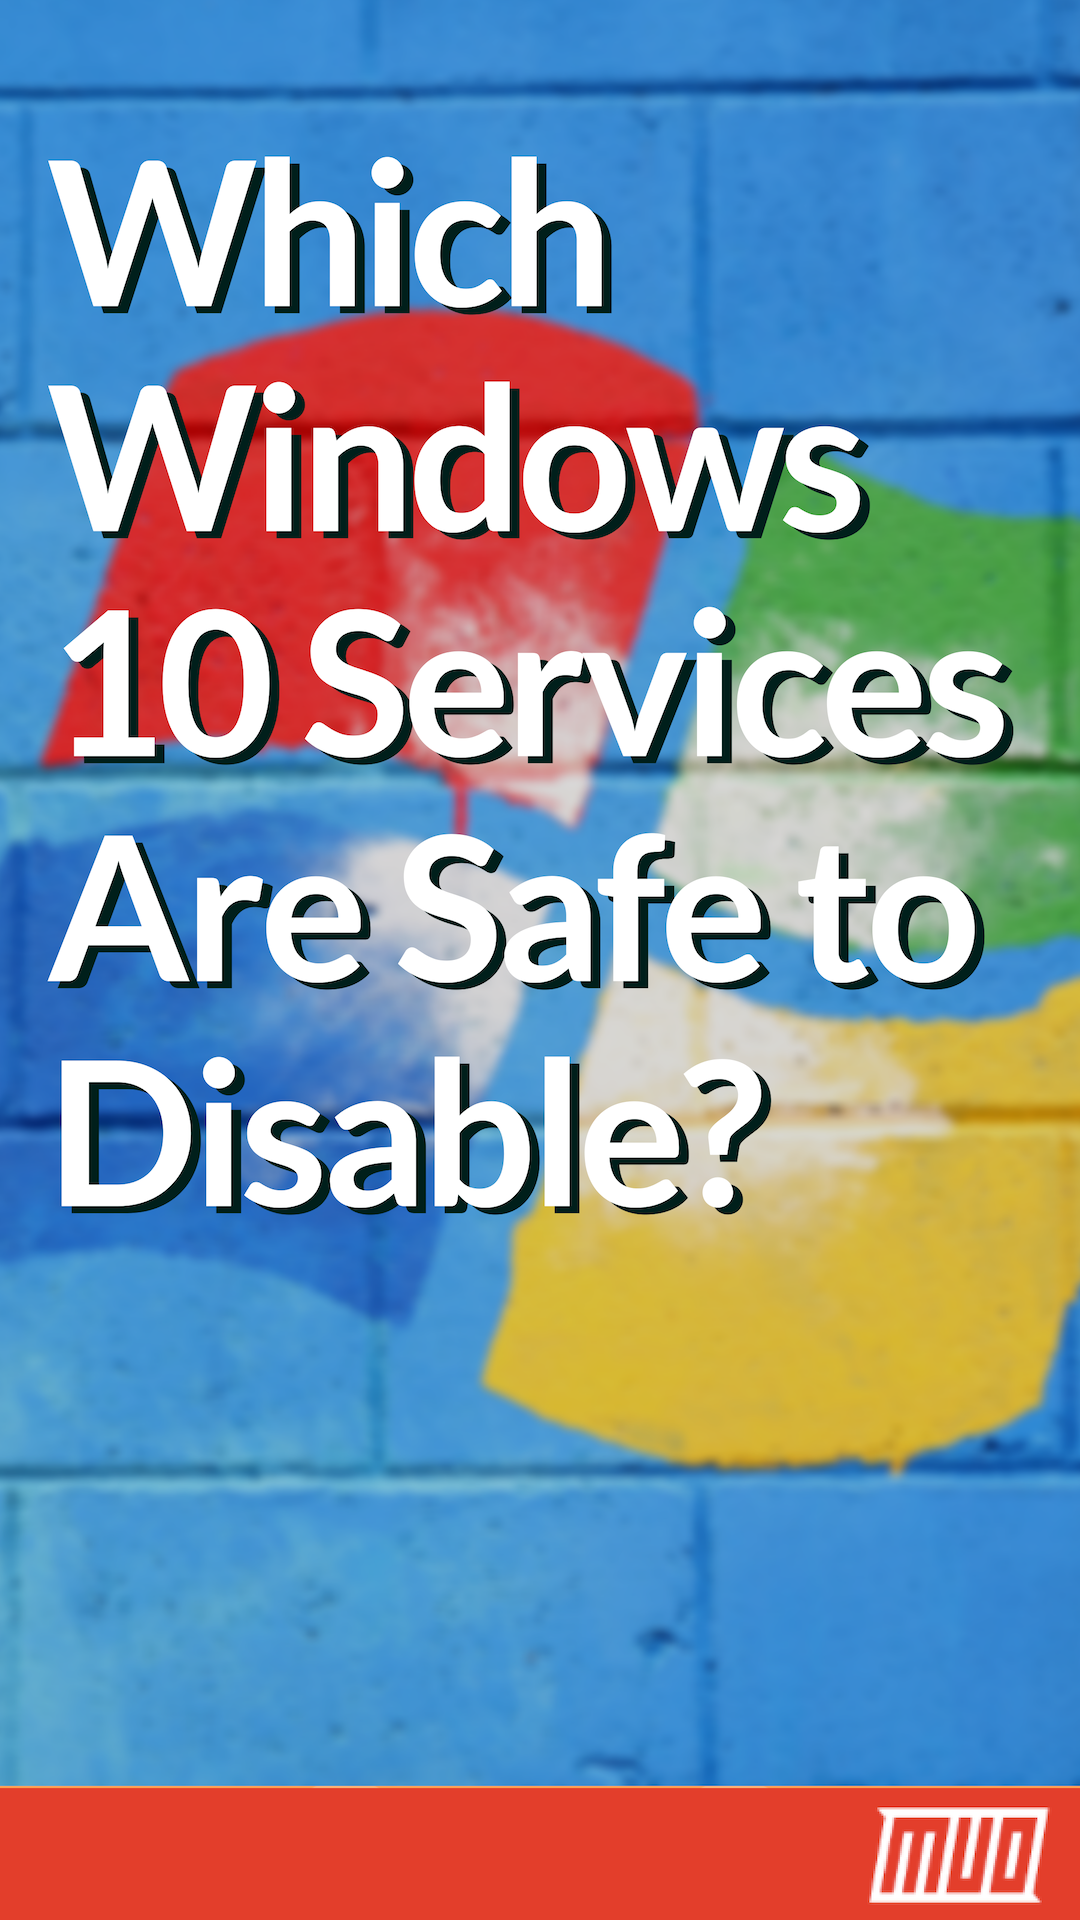 Which Windows 10 Services Are Safe to Disable? Here's an Overview  #Windows #Windows10 #WindowsServices #Guide